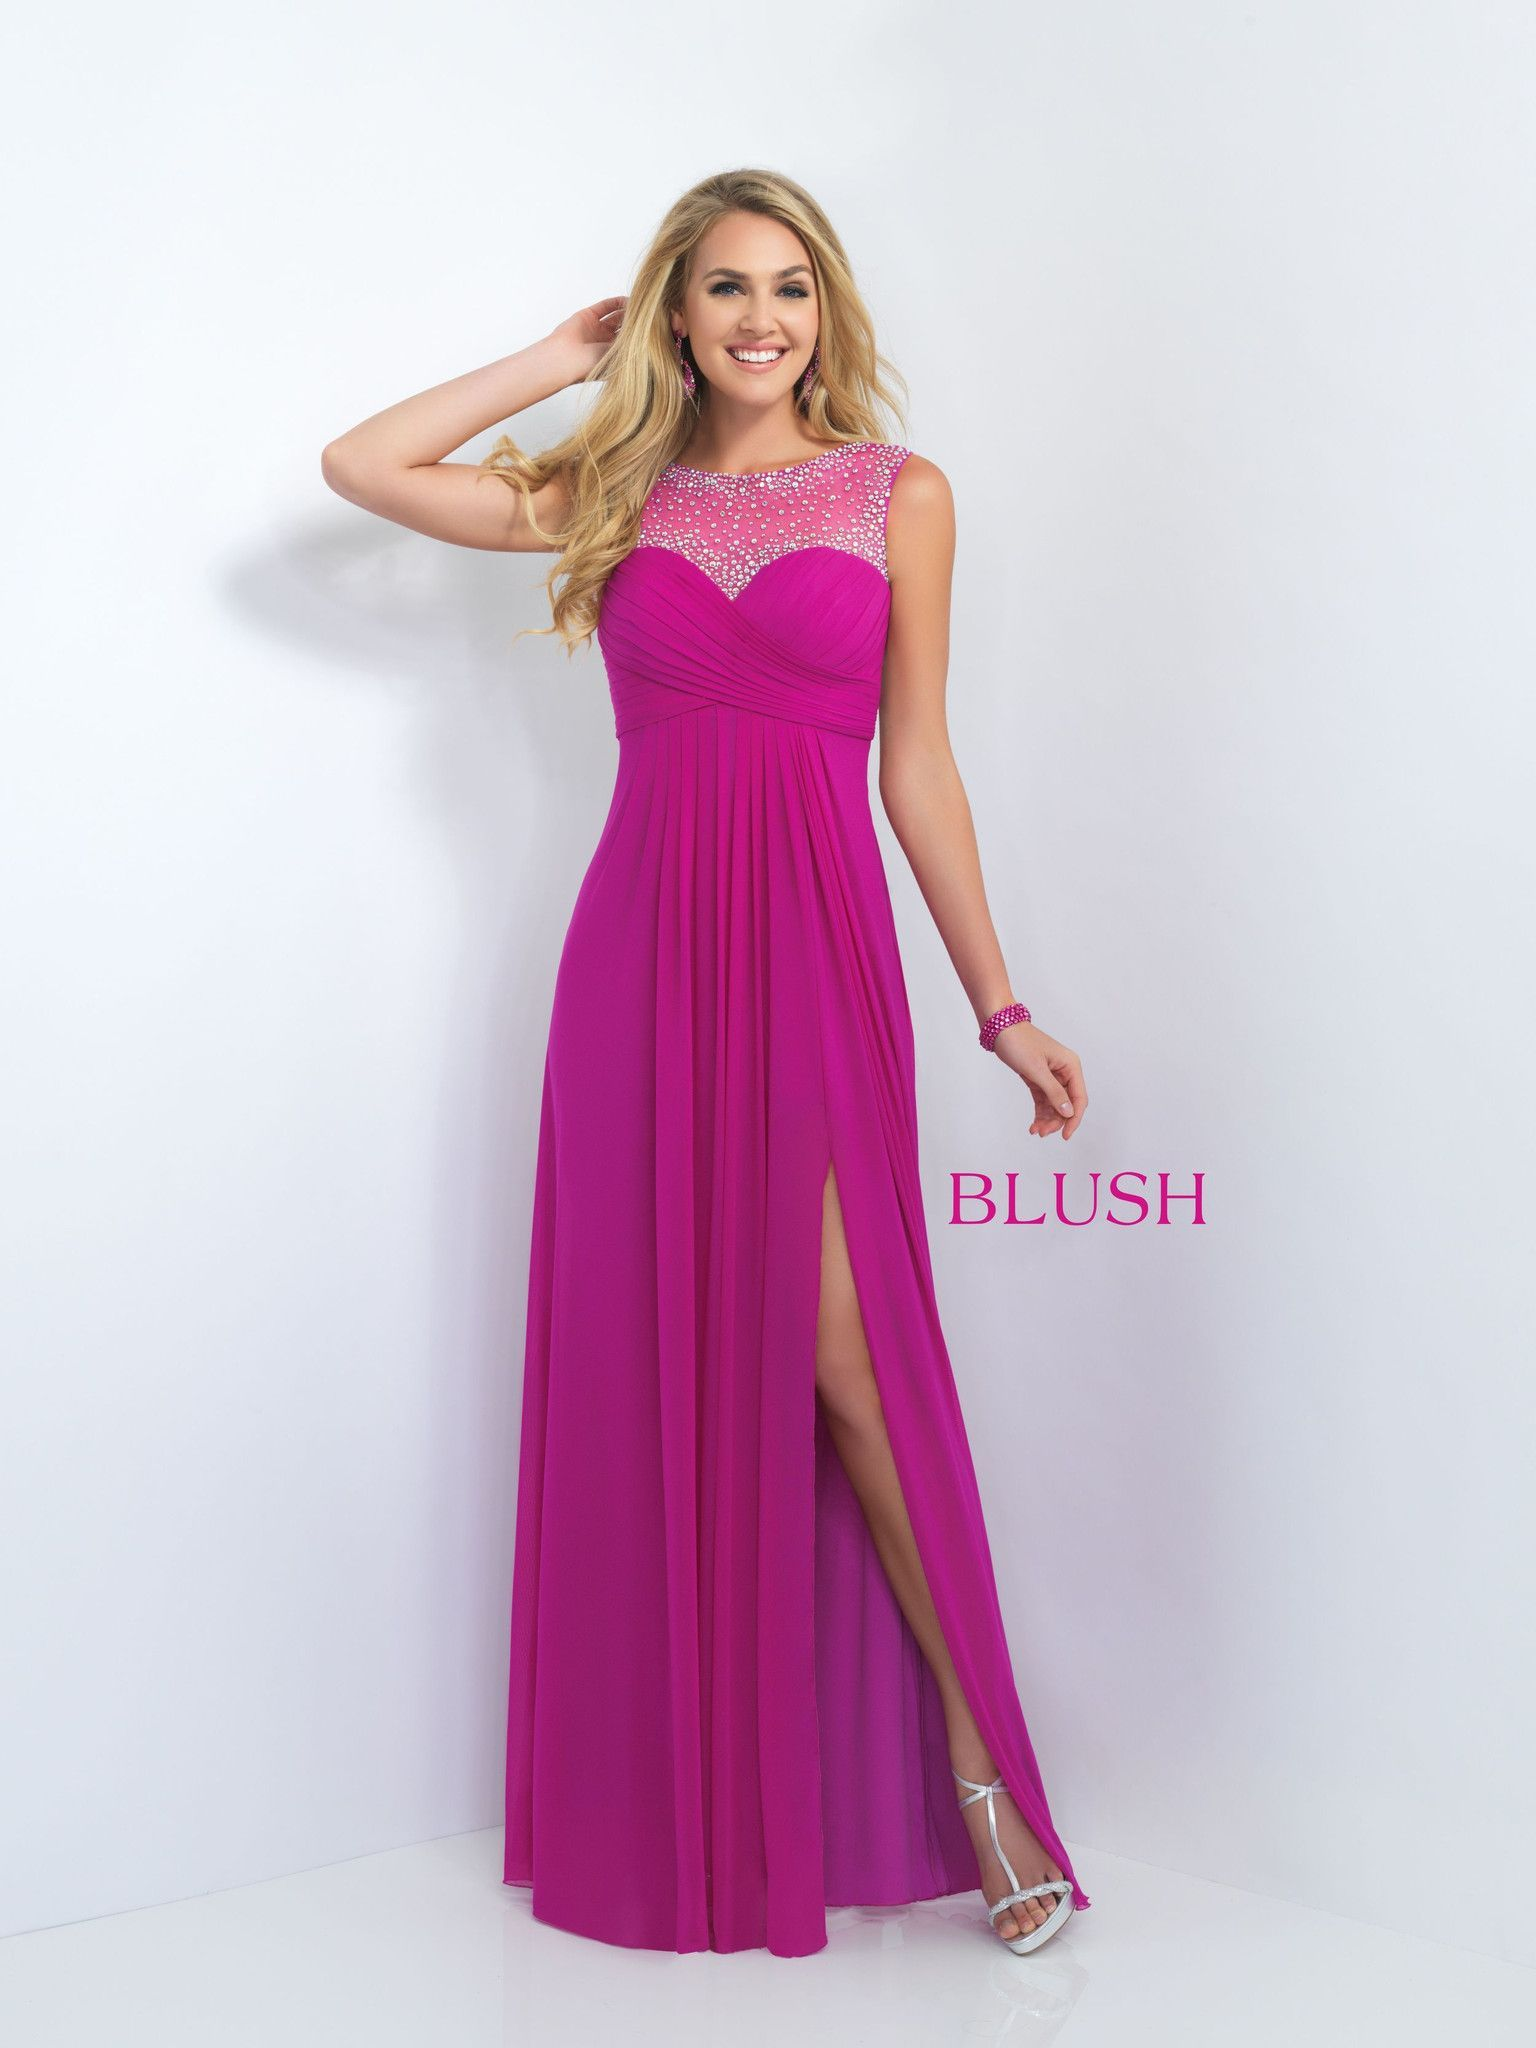 Blush Prom 11096 Magenta | Colorido y alegre | Pinterest | Blush ...